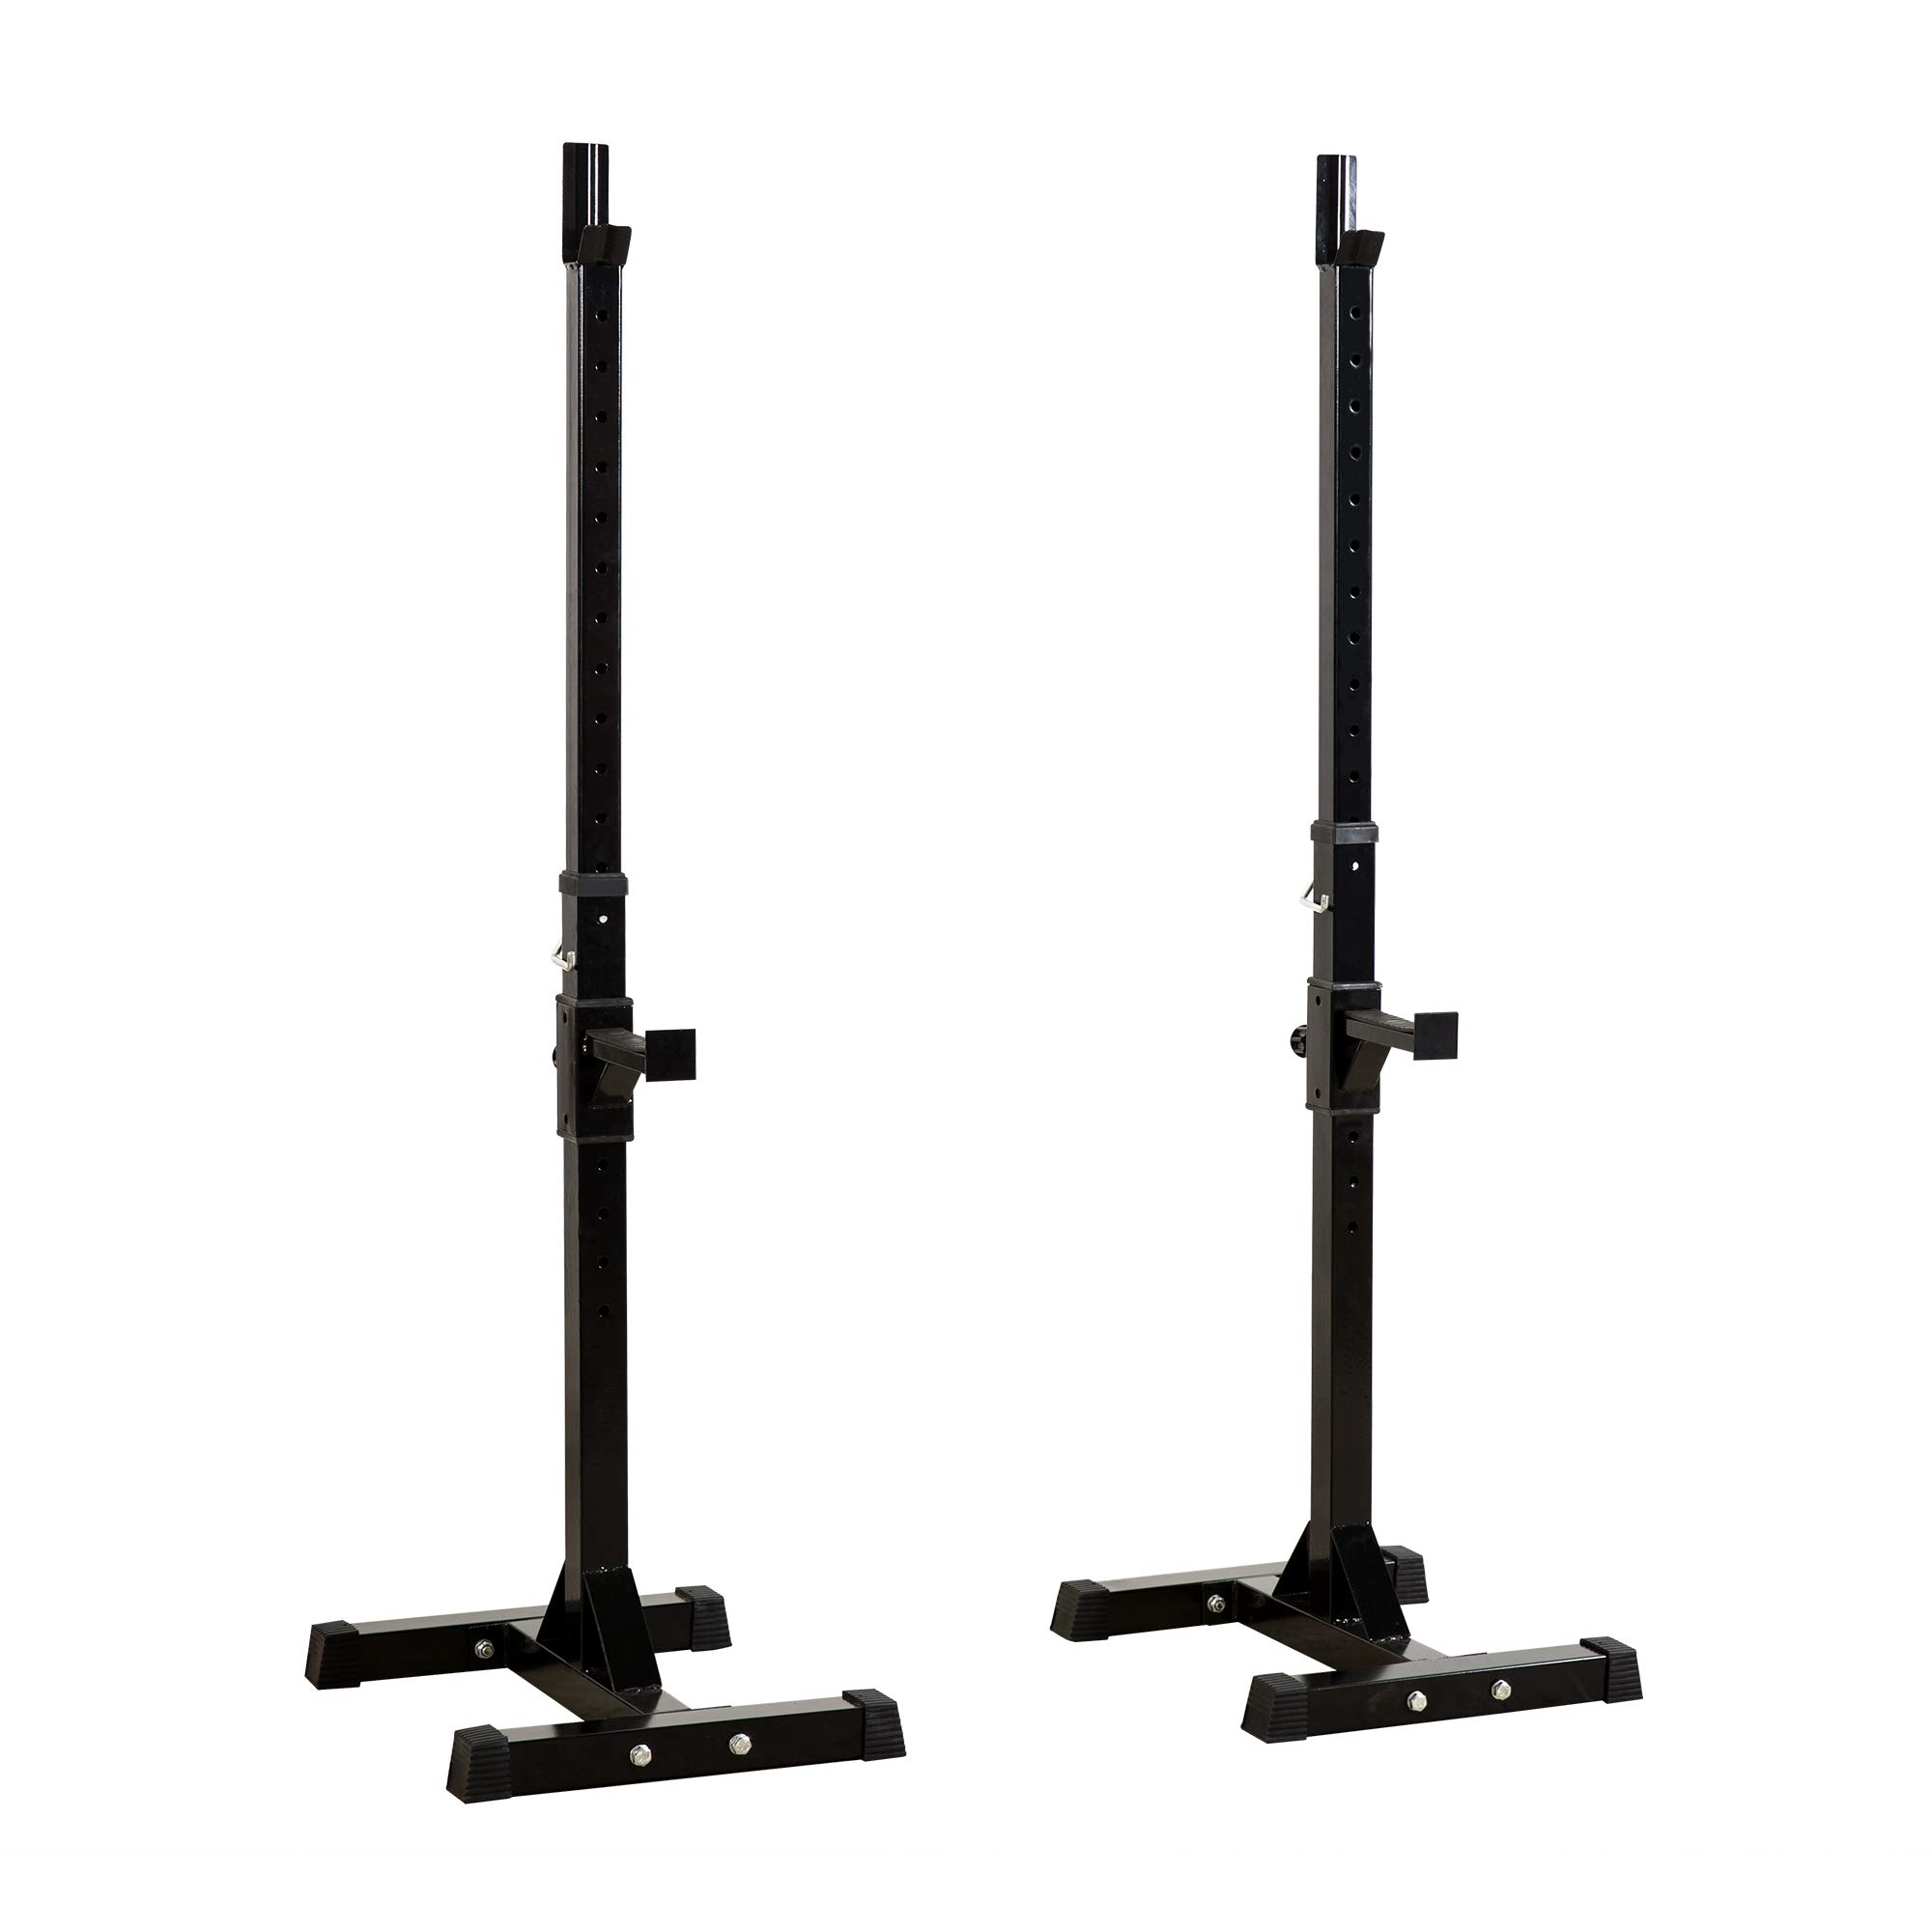 Homevibes Pair Dumbbell Rack Barbell Rack Adjustable Standard Solid Sturdy Steel Squat Stands Free Press Bench Portable Rack Home Gym Exercise Fitness Workout Training, 450lbs Capacity